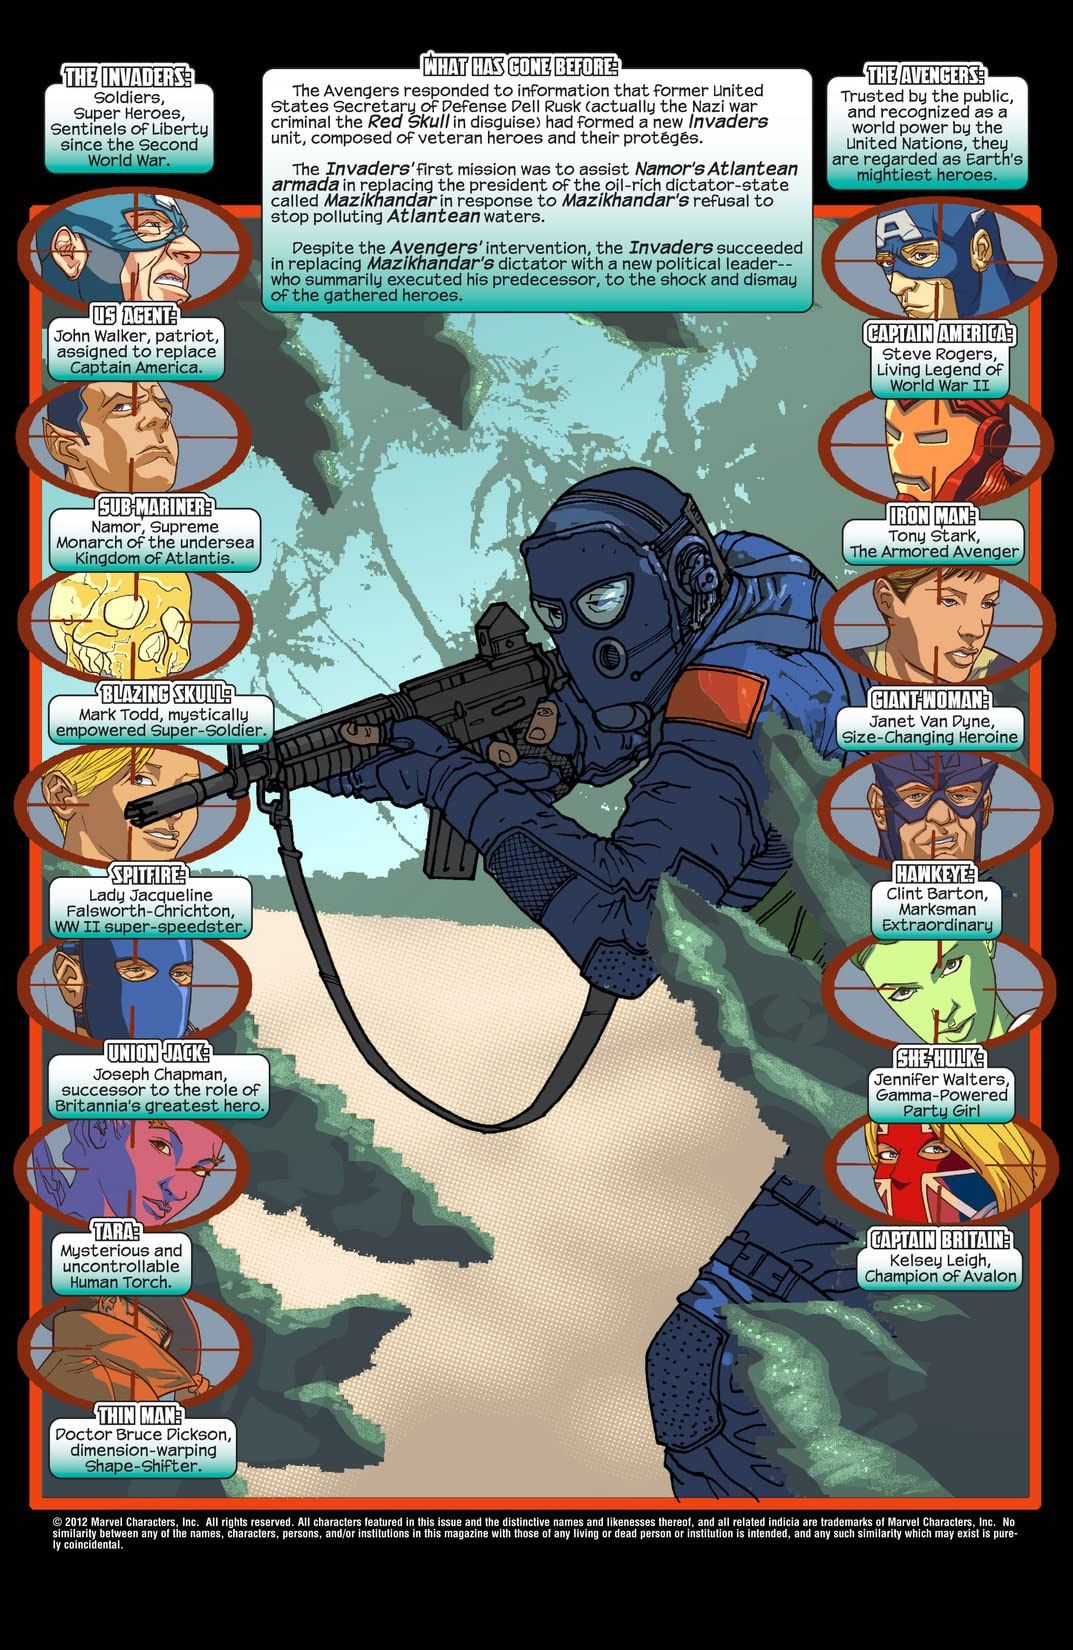 New Invaders (2004-2005) #0